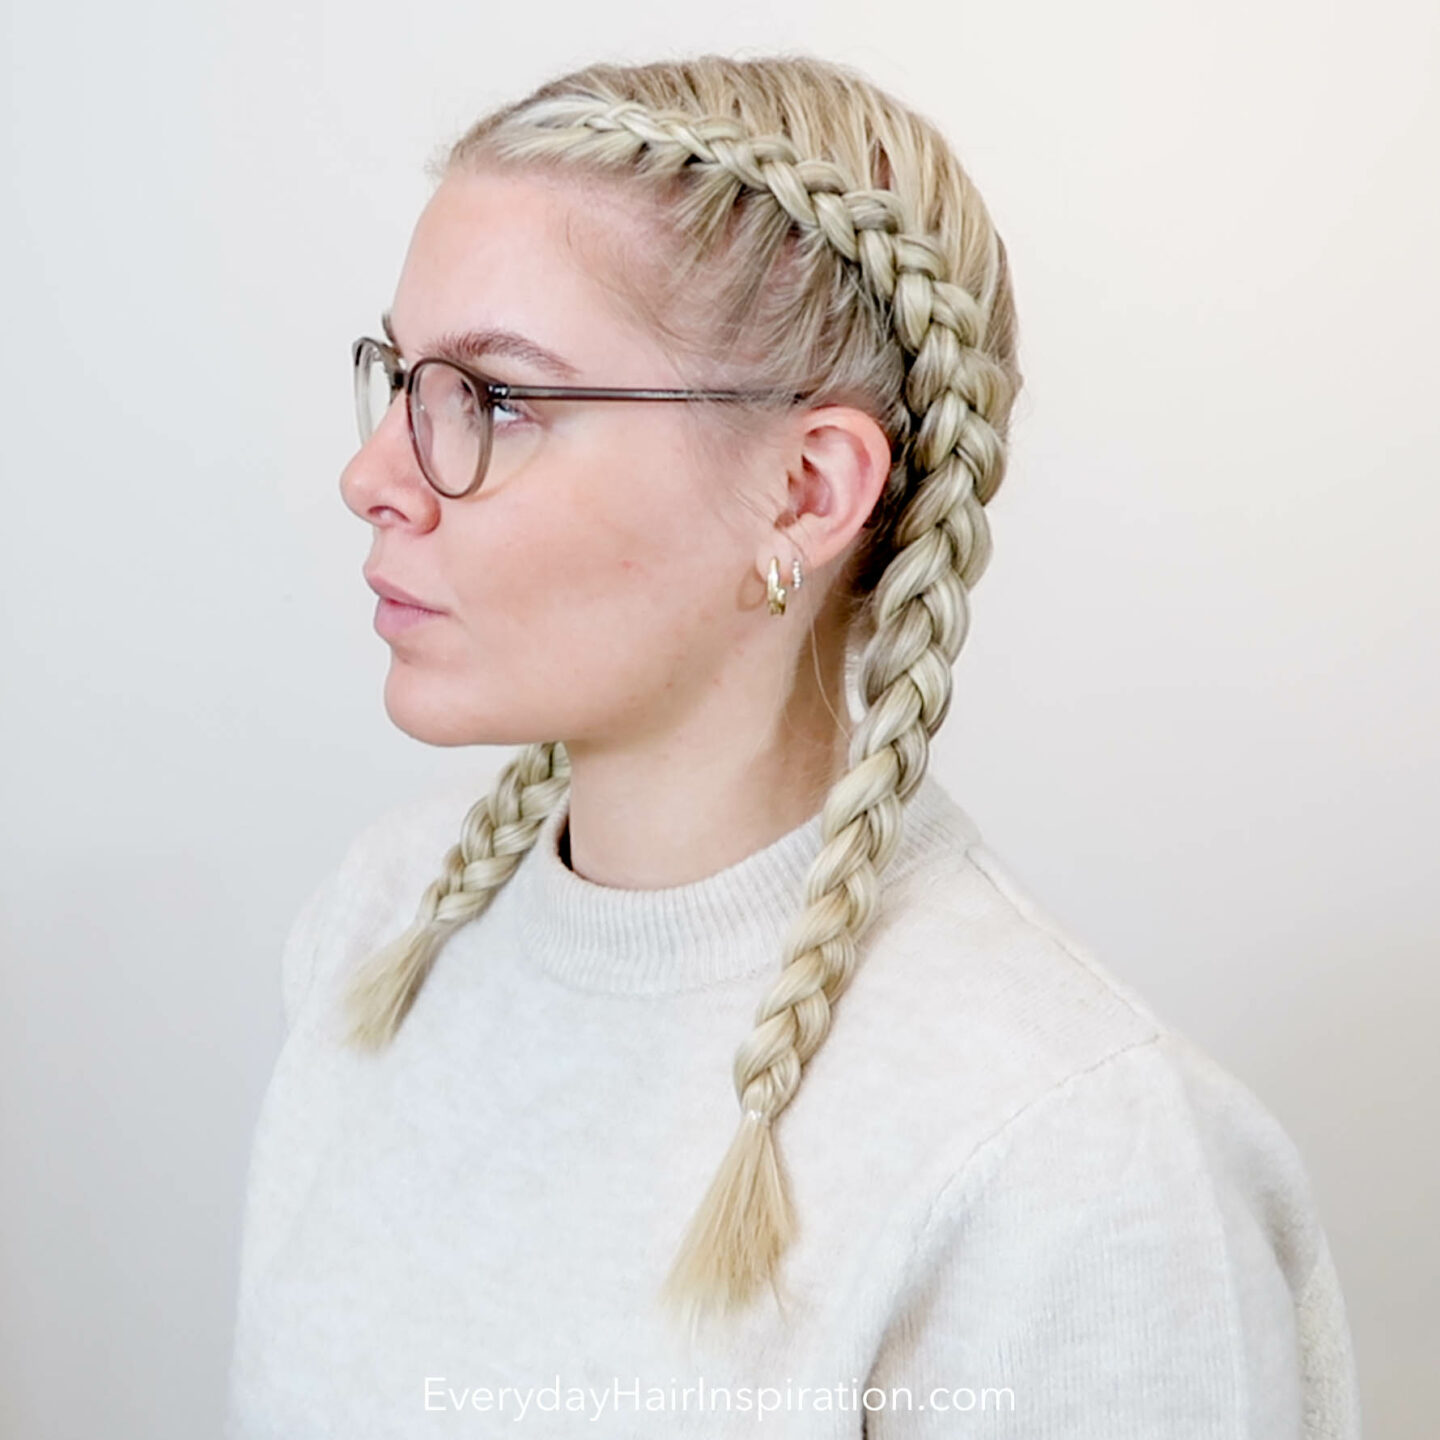 Blonde girl seen from the side with dutch braid in her hair.